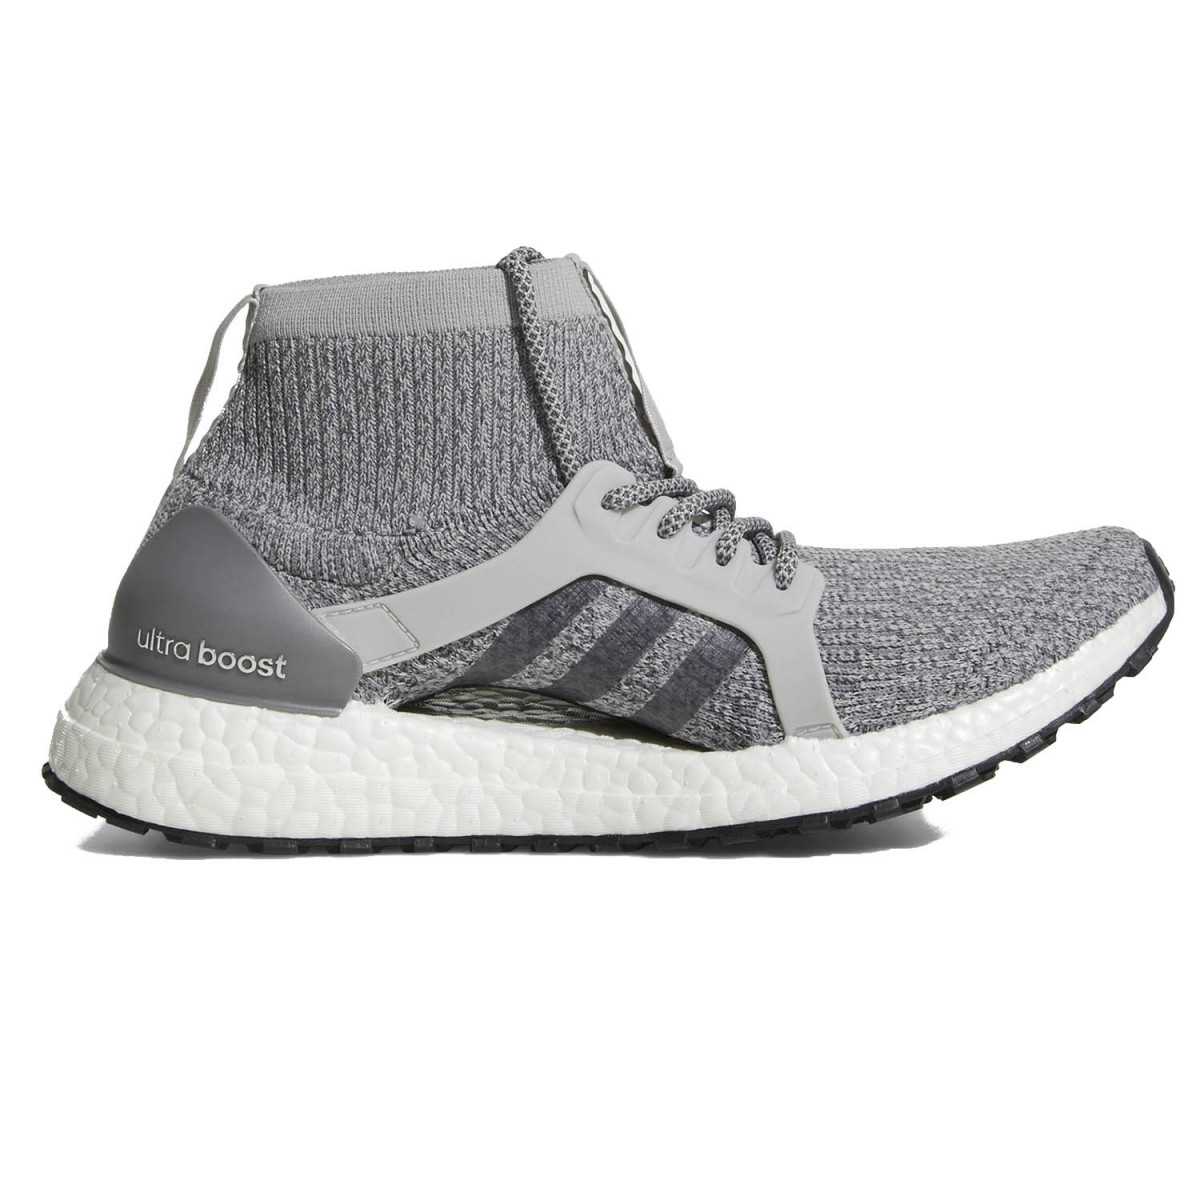 Zapatillas Adidas Ultraboost X All Terrain